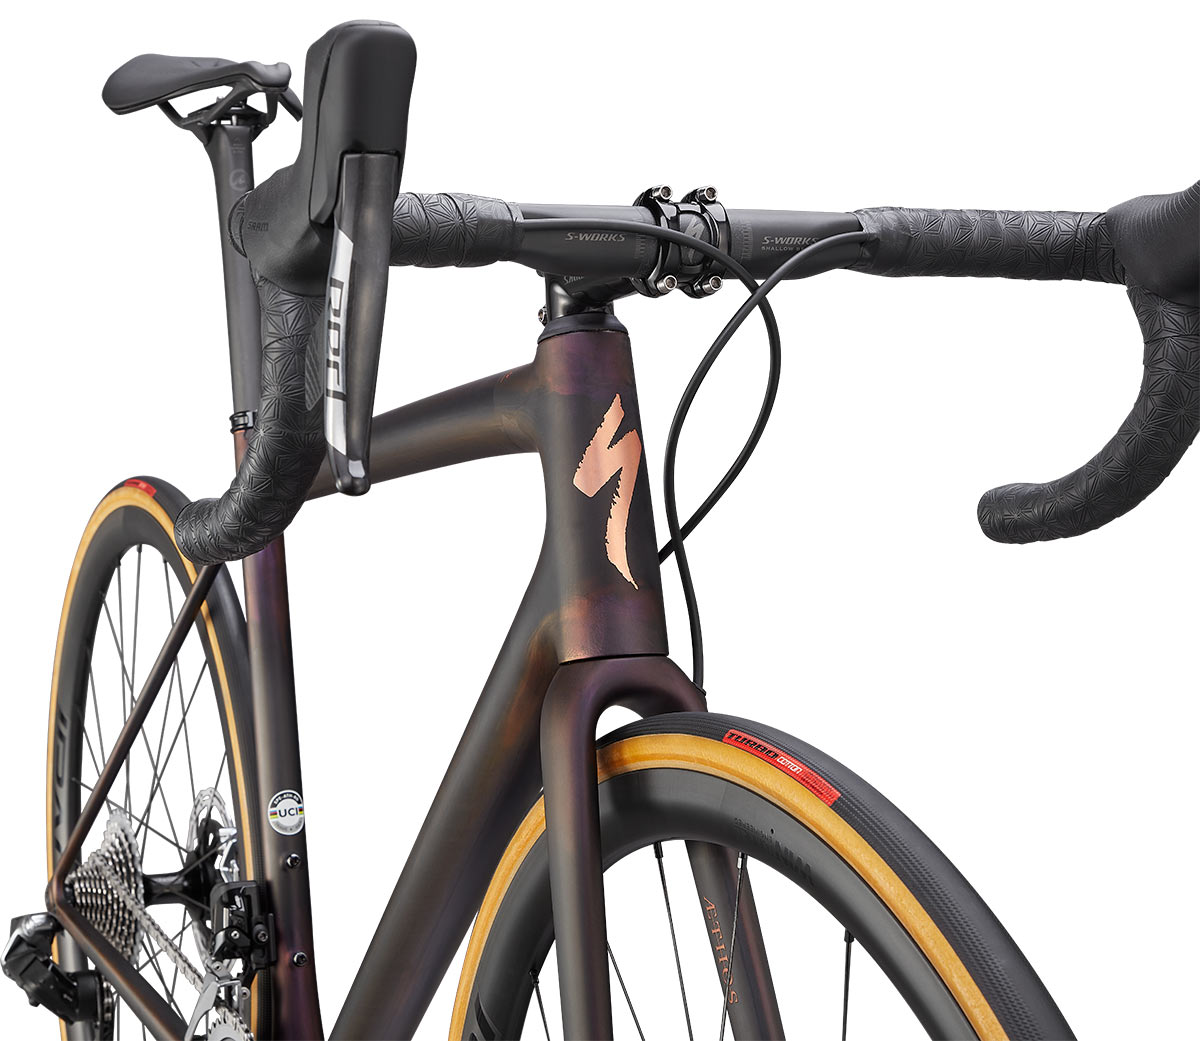 specialized aethos s-works road bike closeup on paint scheme at head tub e